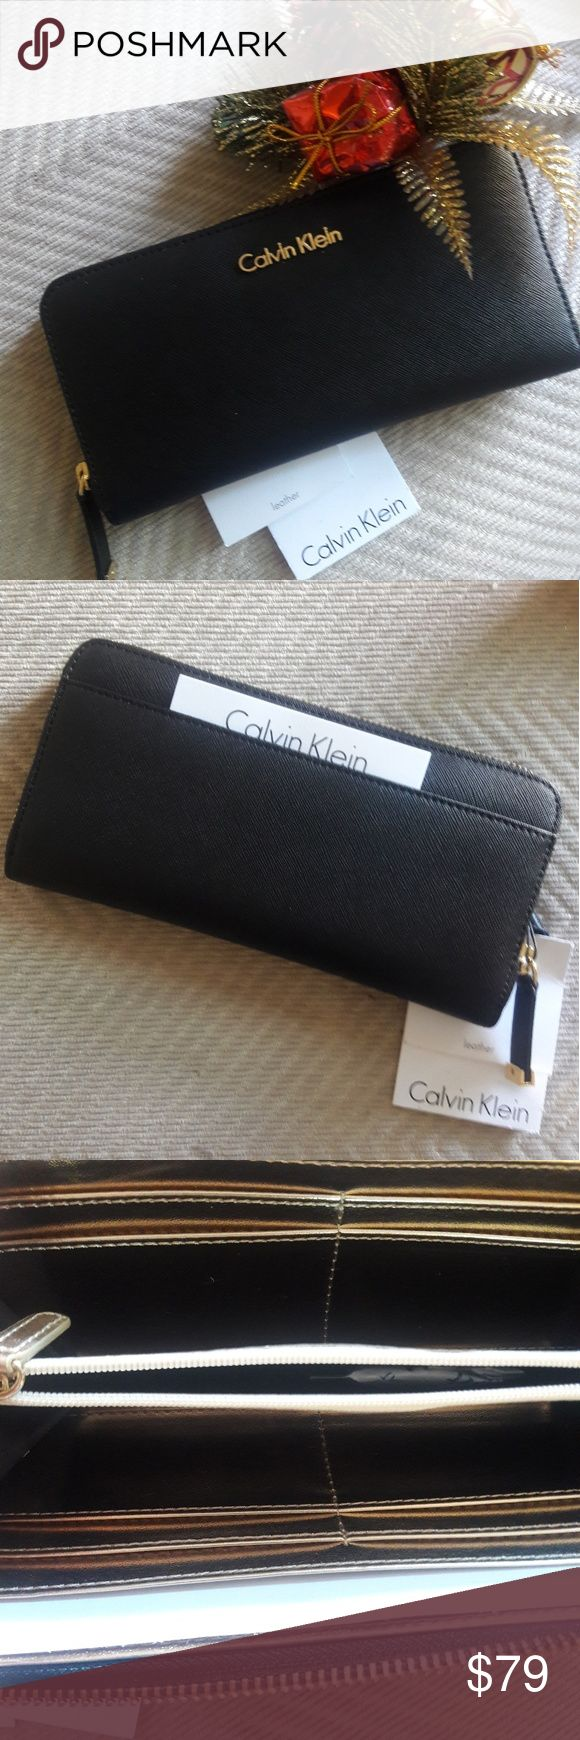 "New Calvin Klein Logo Zip Wallet Case Organizer Brand New Hard To Find  With Tag  Calvin Klein Logo  Women's Wallet Case Organizer  Safiano Leather  Black Color  Round Zipper Closure  Slip Pocket On The Back  8""L × 4""H × 3/4""W Original Price is $98 + Tax Great Idea For Gift! Please Feel Free To Ask Questions Calvin Klein Bags Wallets"